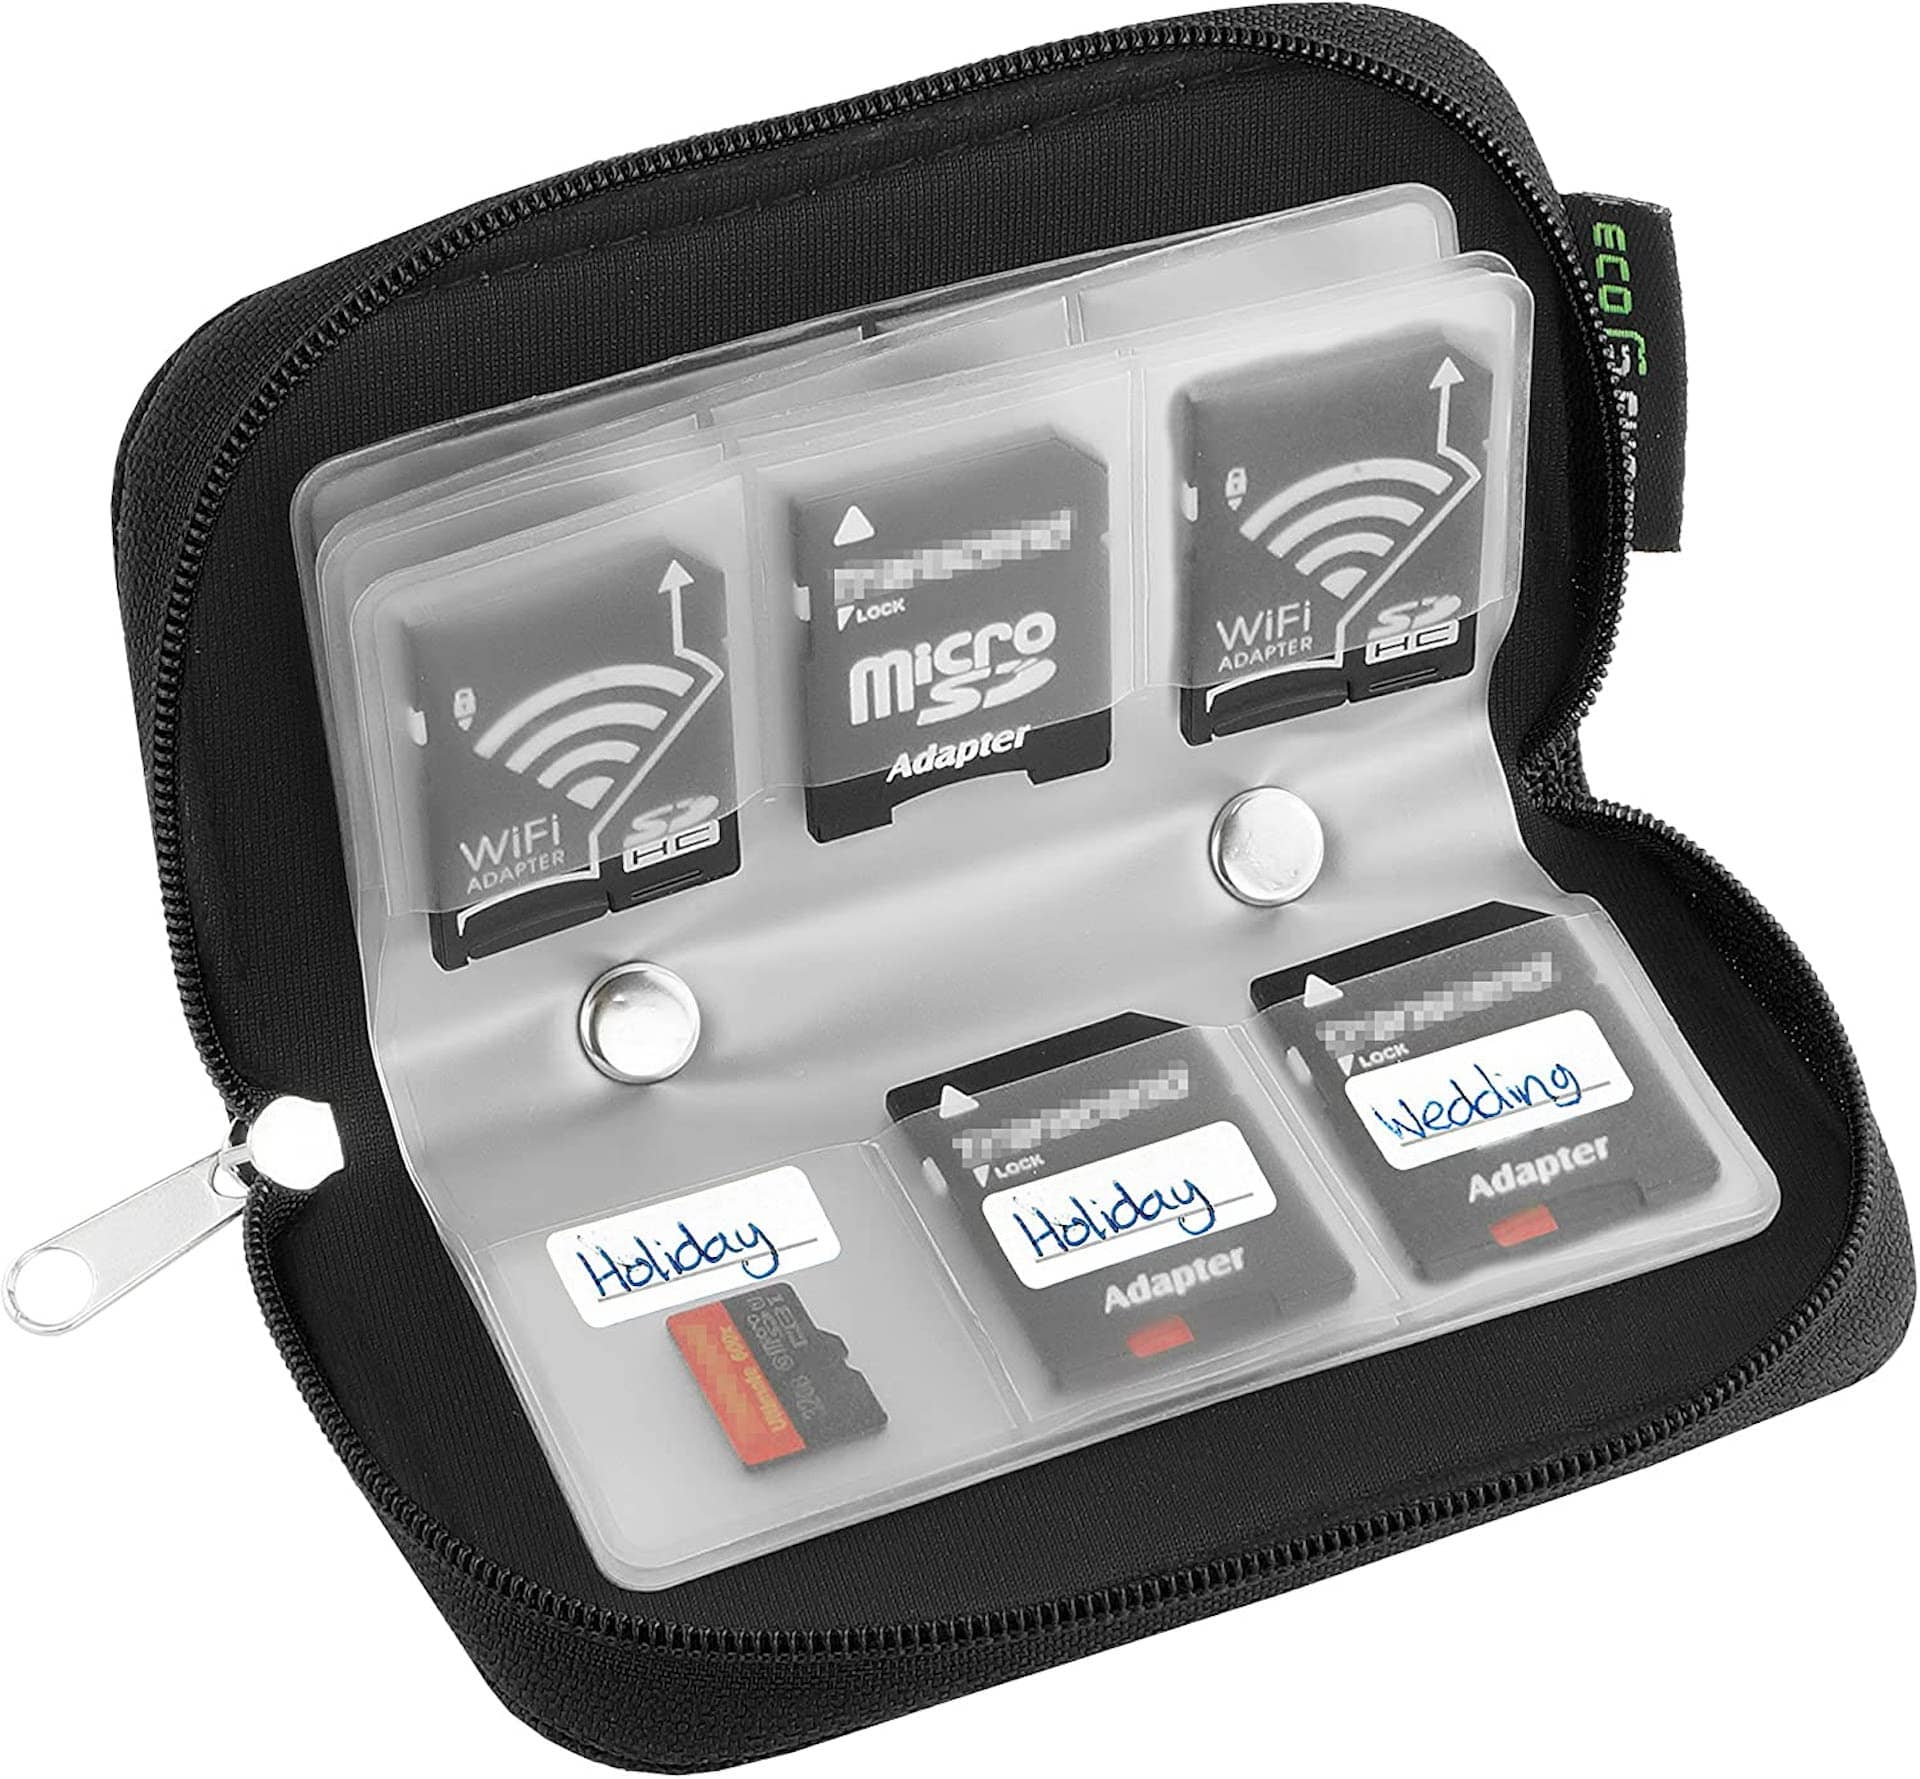 Best Photo Gifts for Photographers - Ideas Photographer Lovers - Memory Card Holder